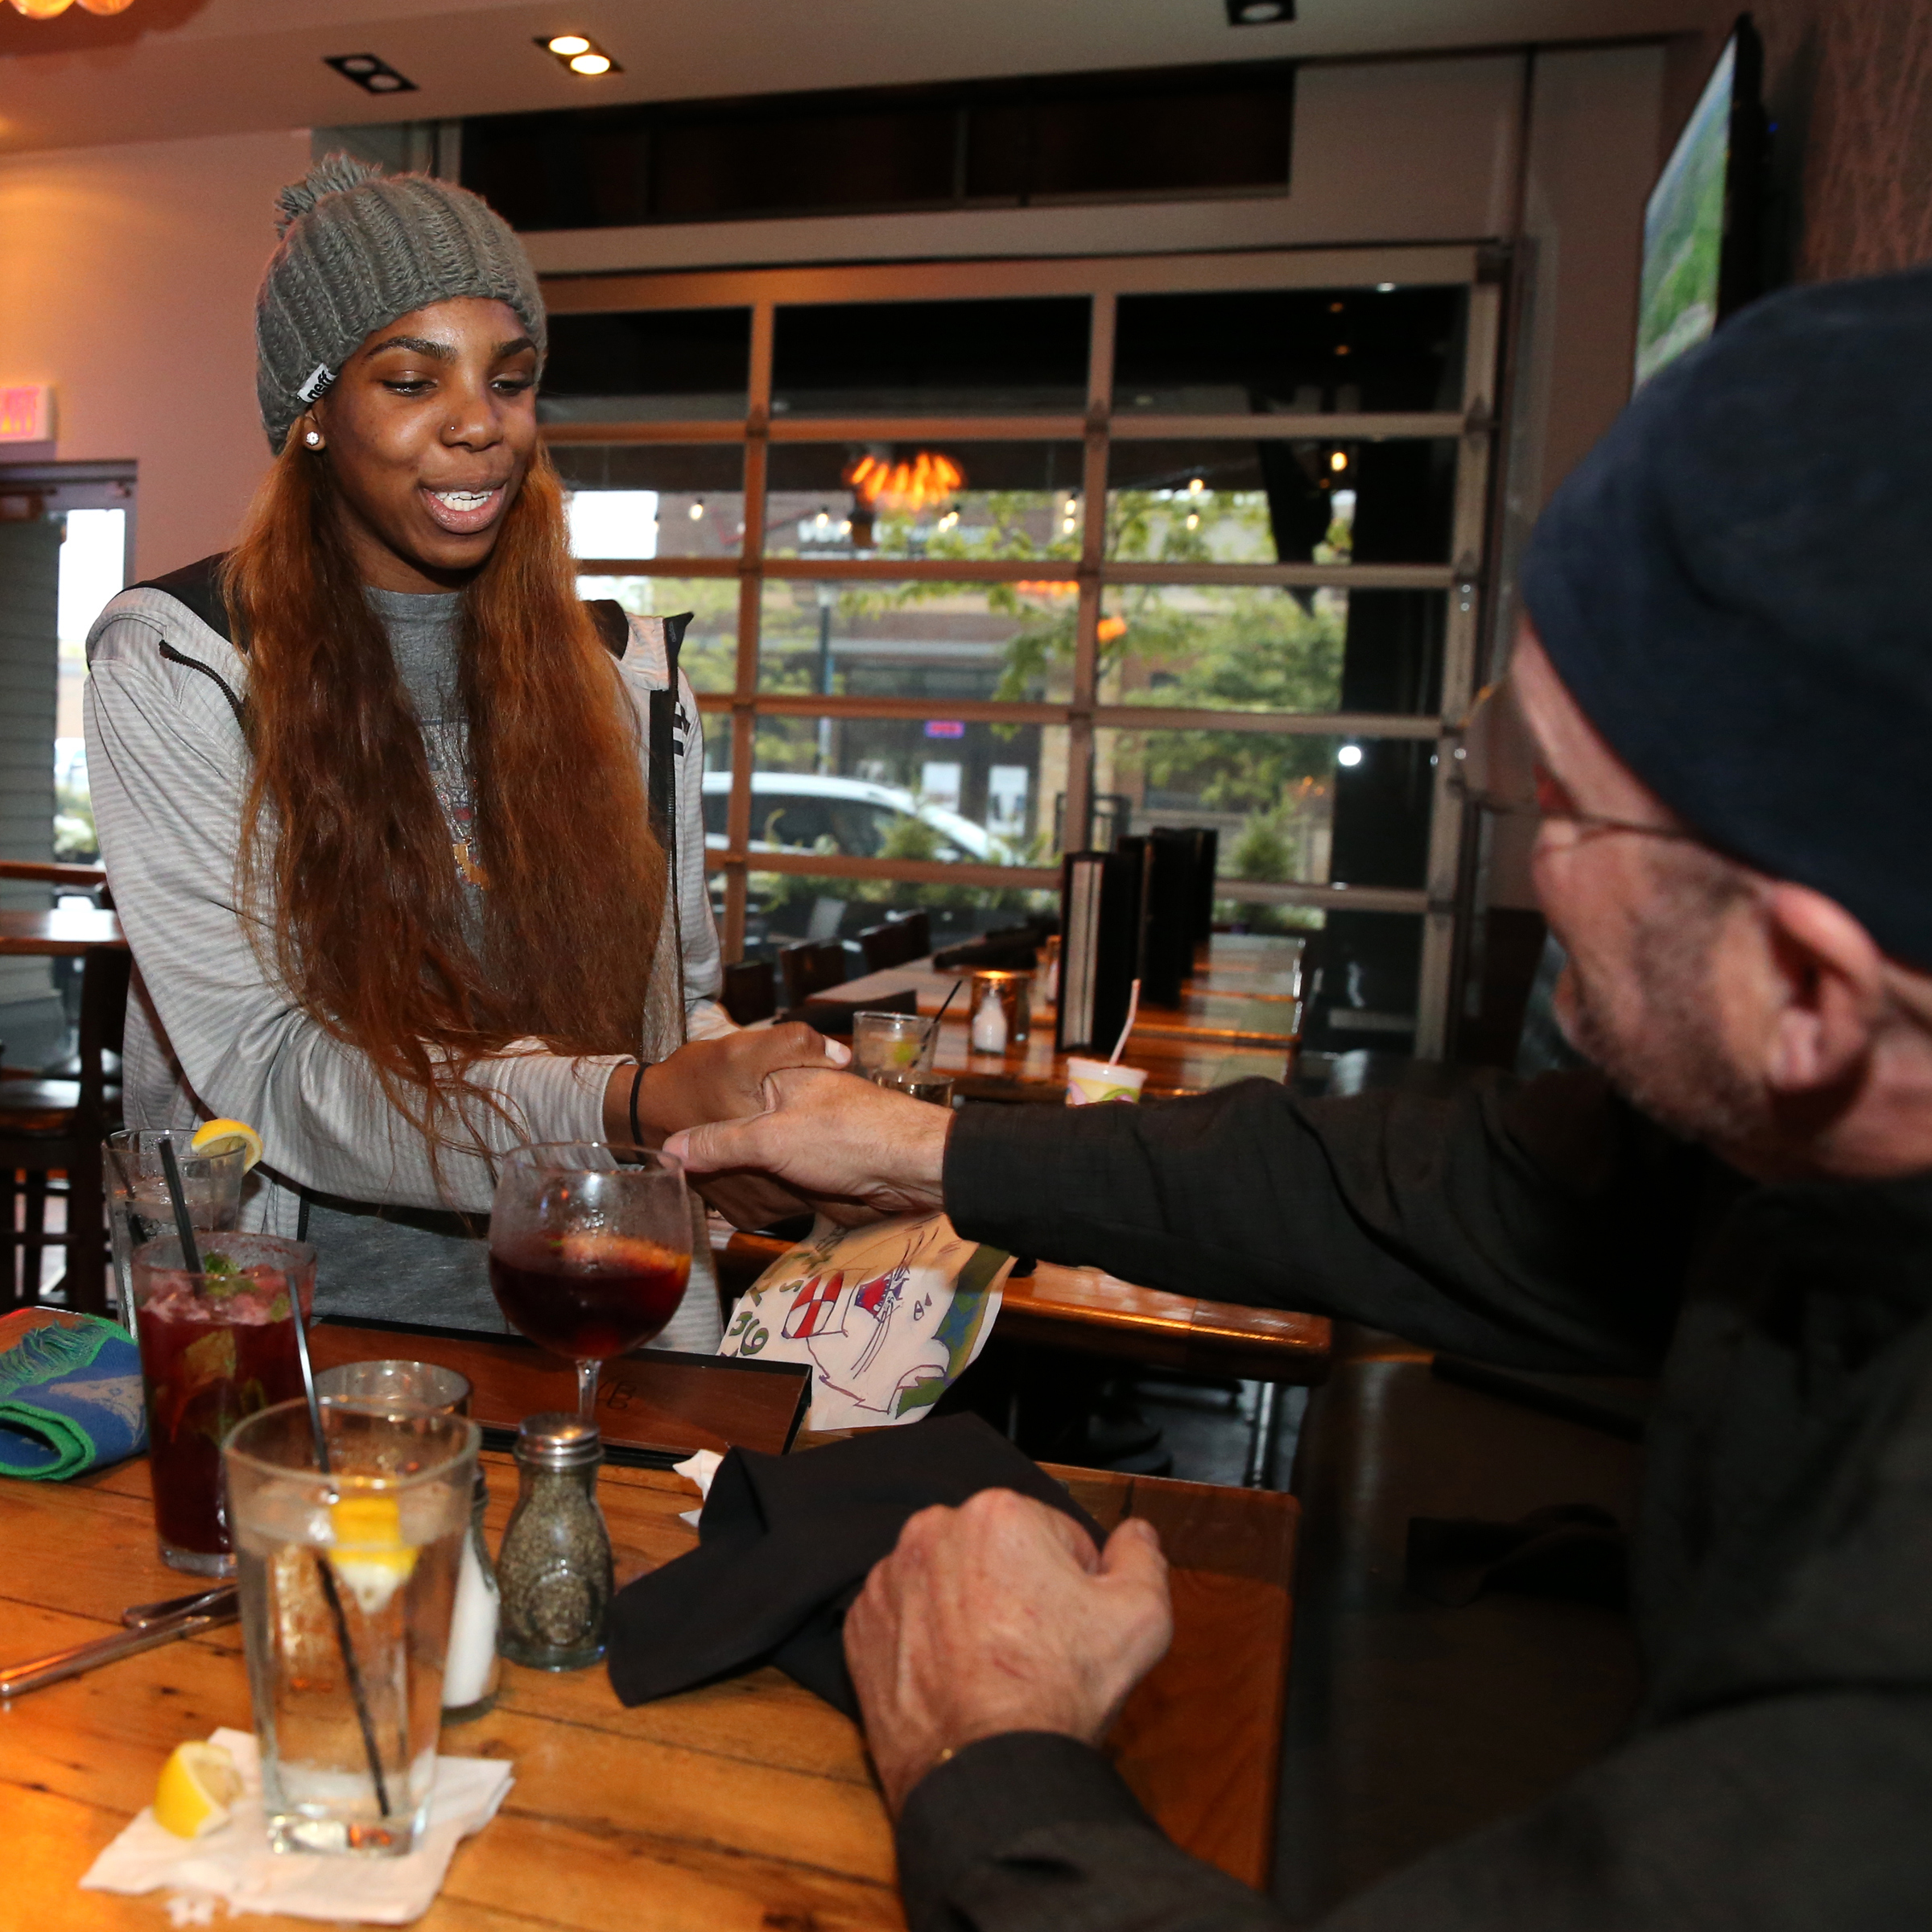 MINNEAPOLIS, MN - JUNE 3:  Reshanda Gray #21 of the Minnesota Lynx greets fans during the Tip-A-Lynx fundraiser to benefit the Minnesota Lynx Fastbreak Foundation on June 3, 2015 at the Loop West End Bar & Restaurant in Minneapolis, Minnesota.  NOTE TO USER: User expressly acknowledges and agrees that, by downloading and or using this Photograph, user is consenting to the terms and conditions of the Getty Images License Agreement. Mandatory Copyright Notice: Copyright 2015 NBAE (Photo by David Sherman/NBAE via Getty Images)